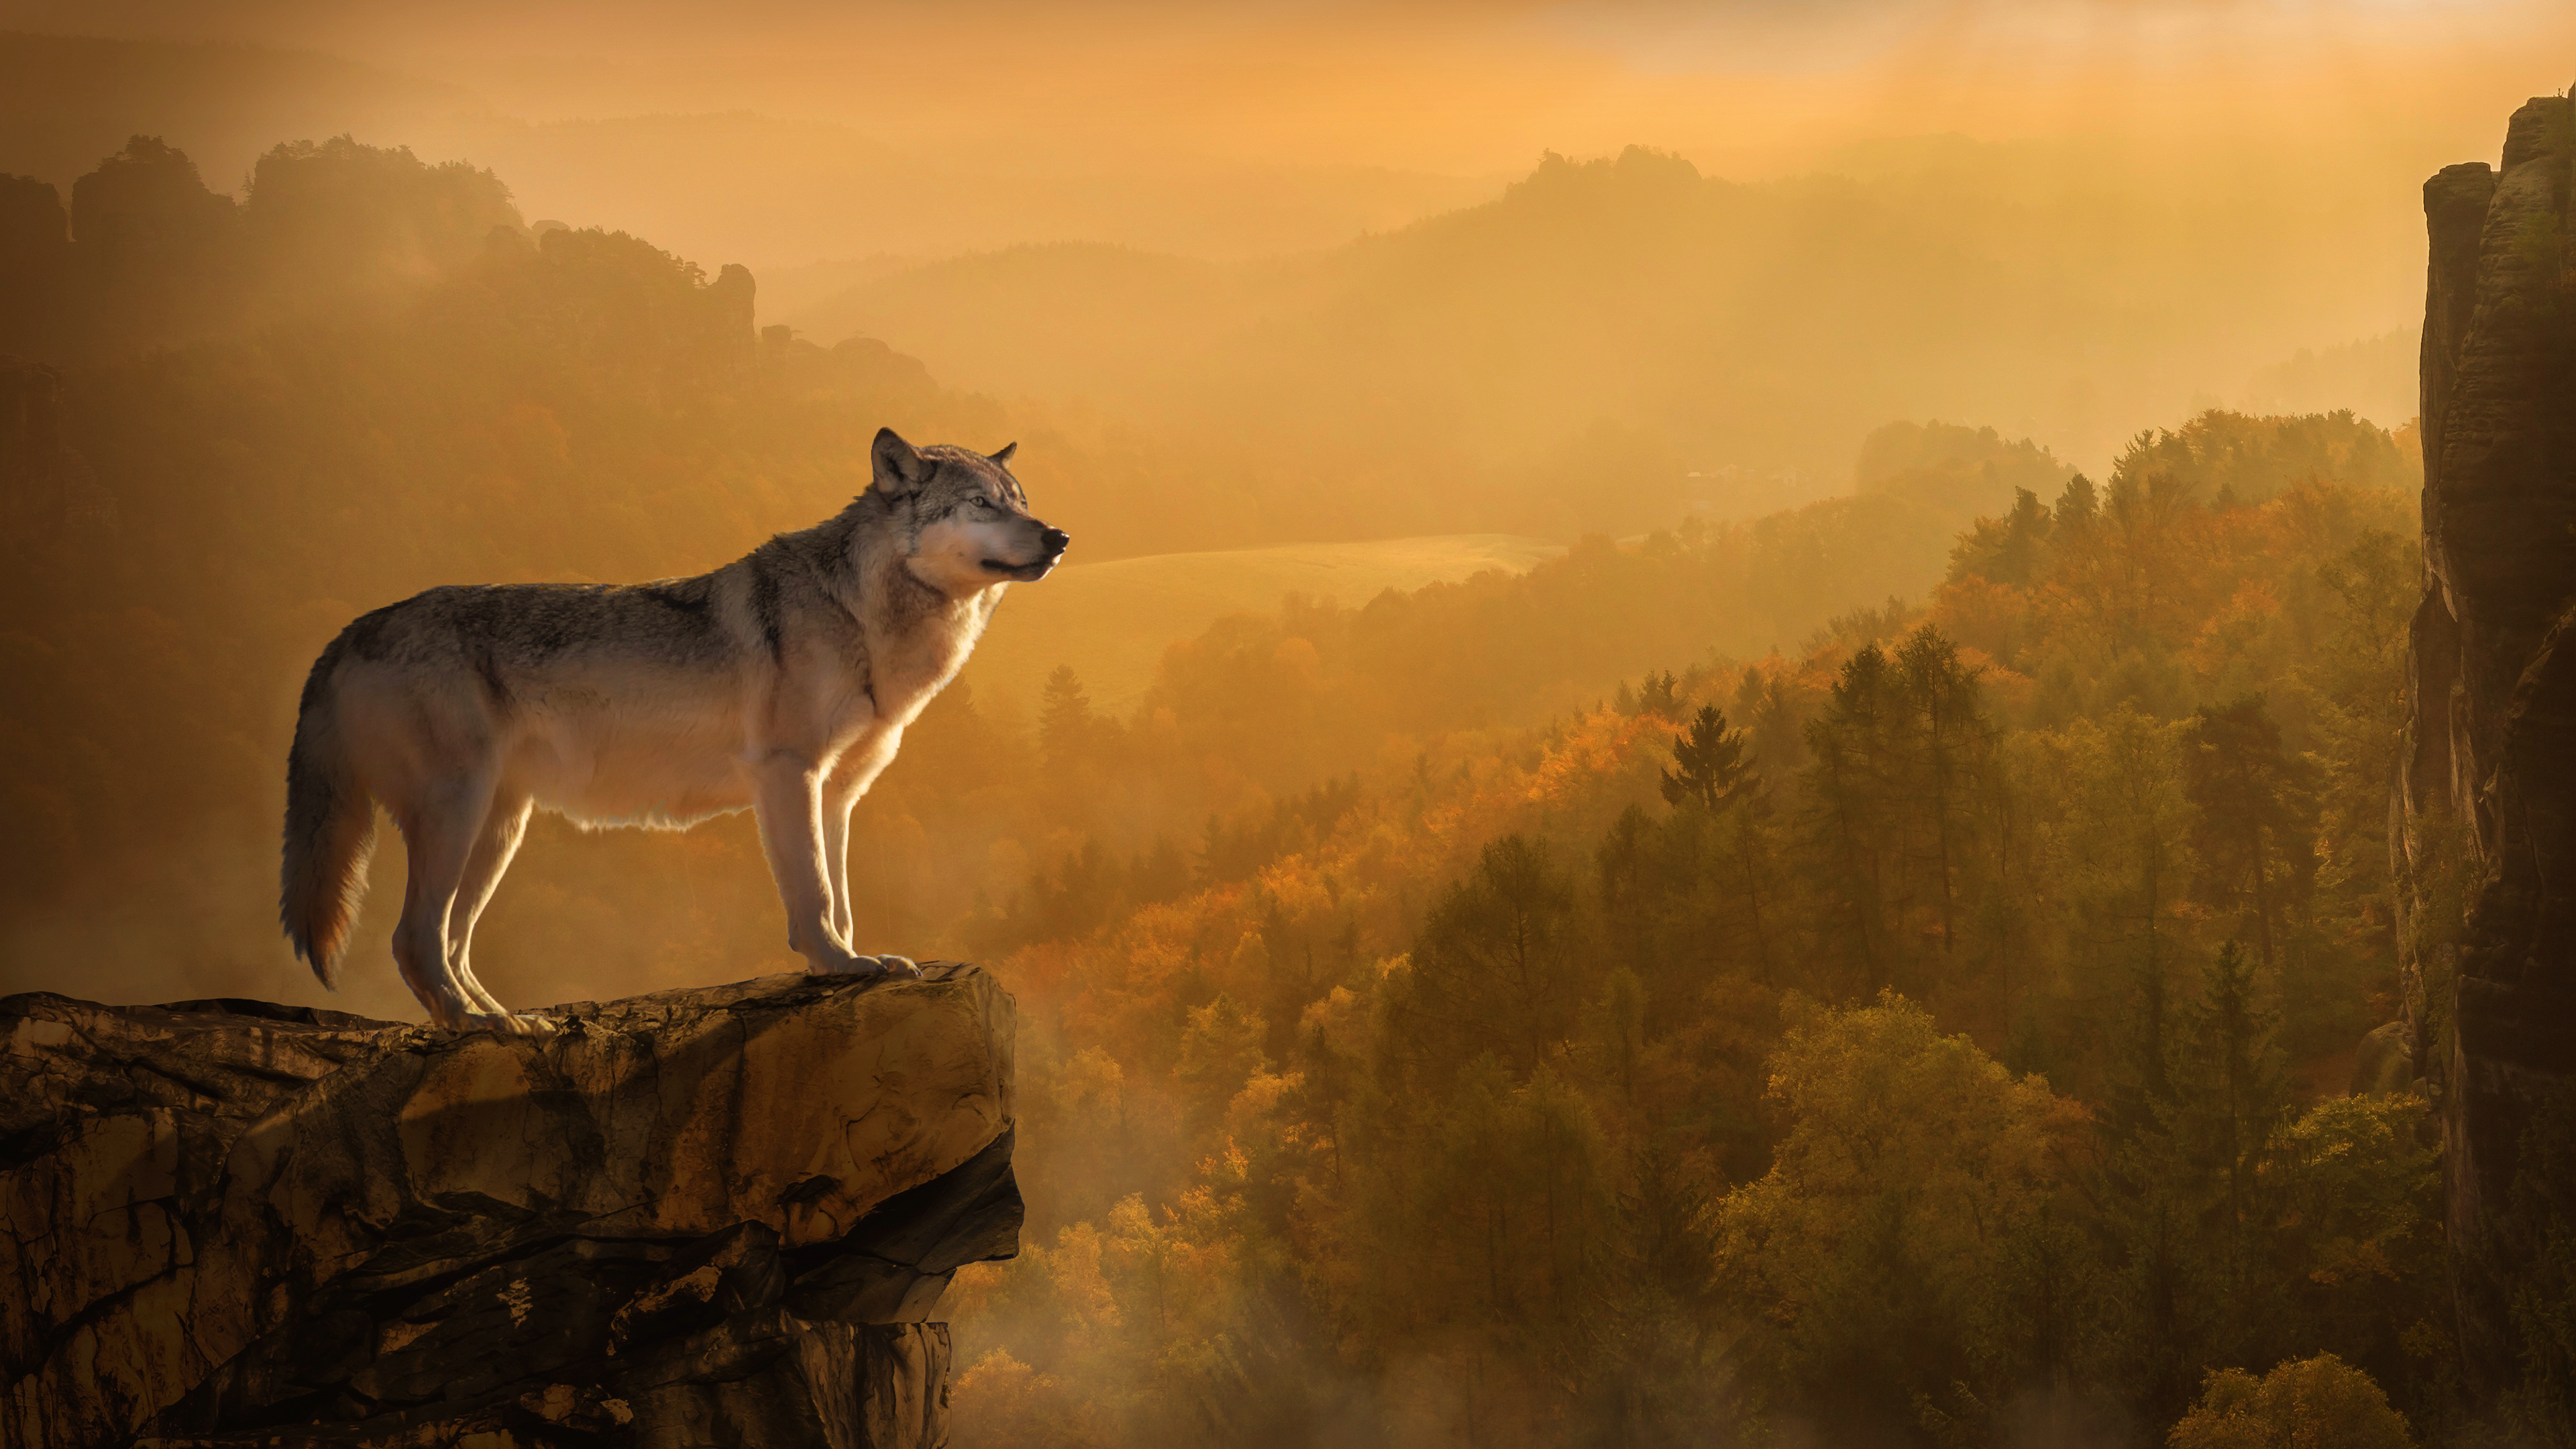 Download free hd autumn wolf desktop wallpaper in 4k 0011 - All animals hd wallpapers ...